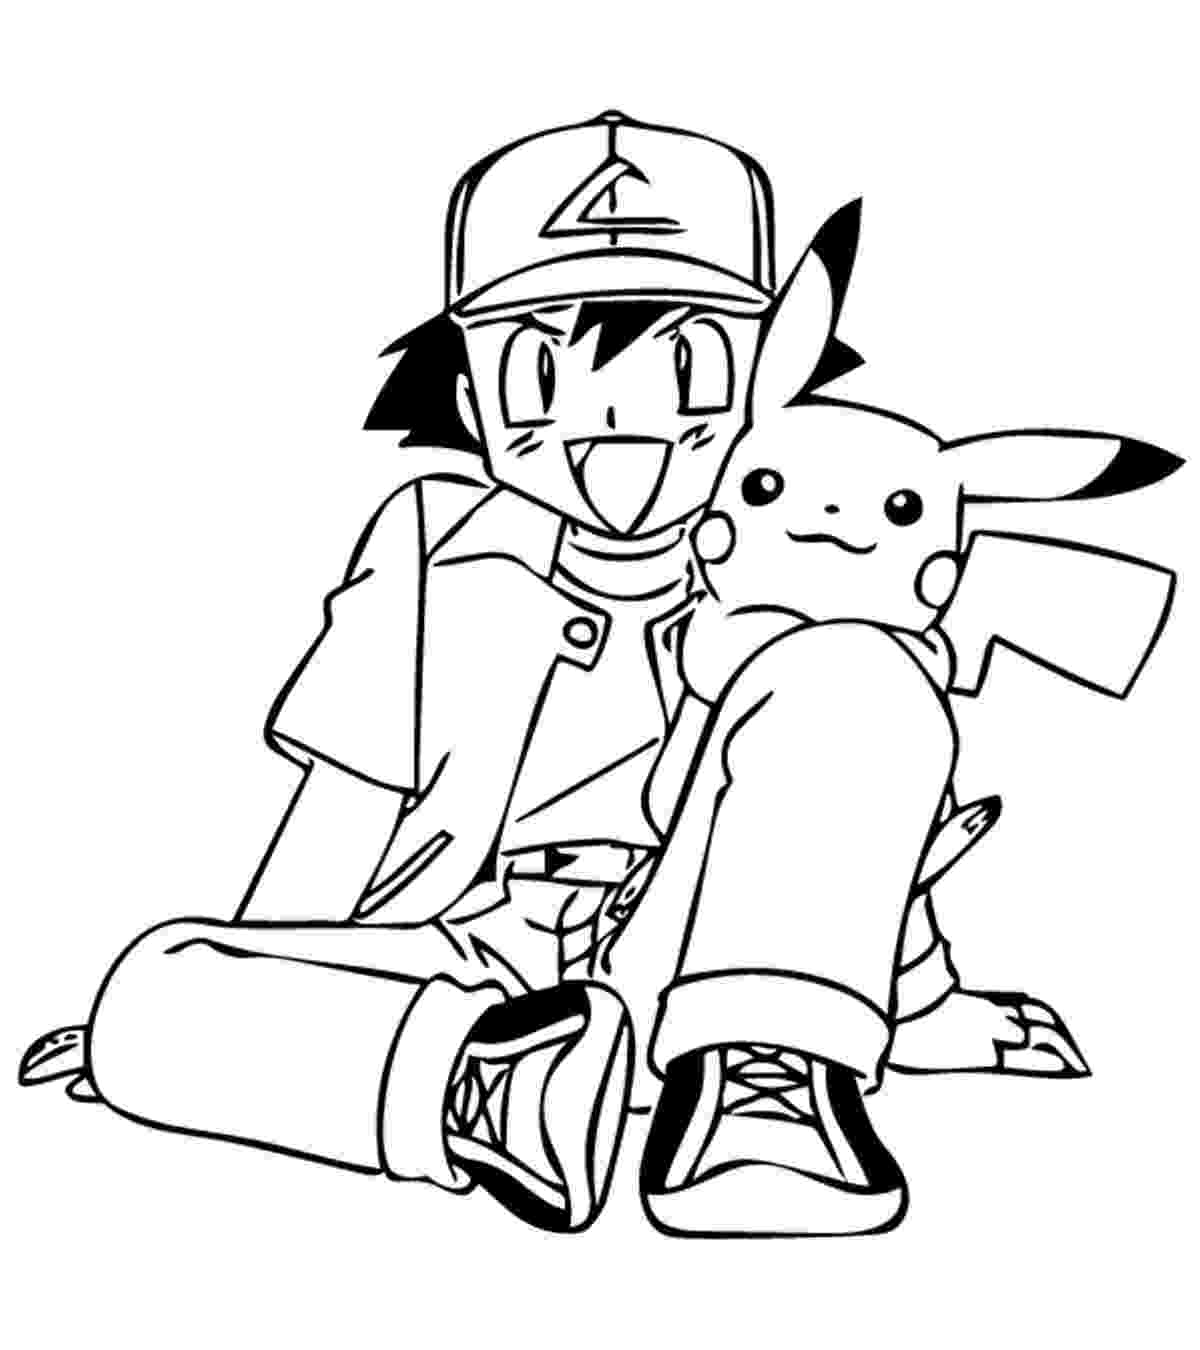 pokemon coloring picture all pokemon coloring pages download and print for free pokemon picture coloring